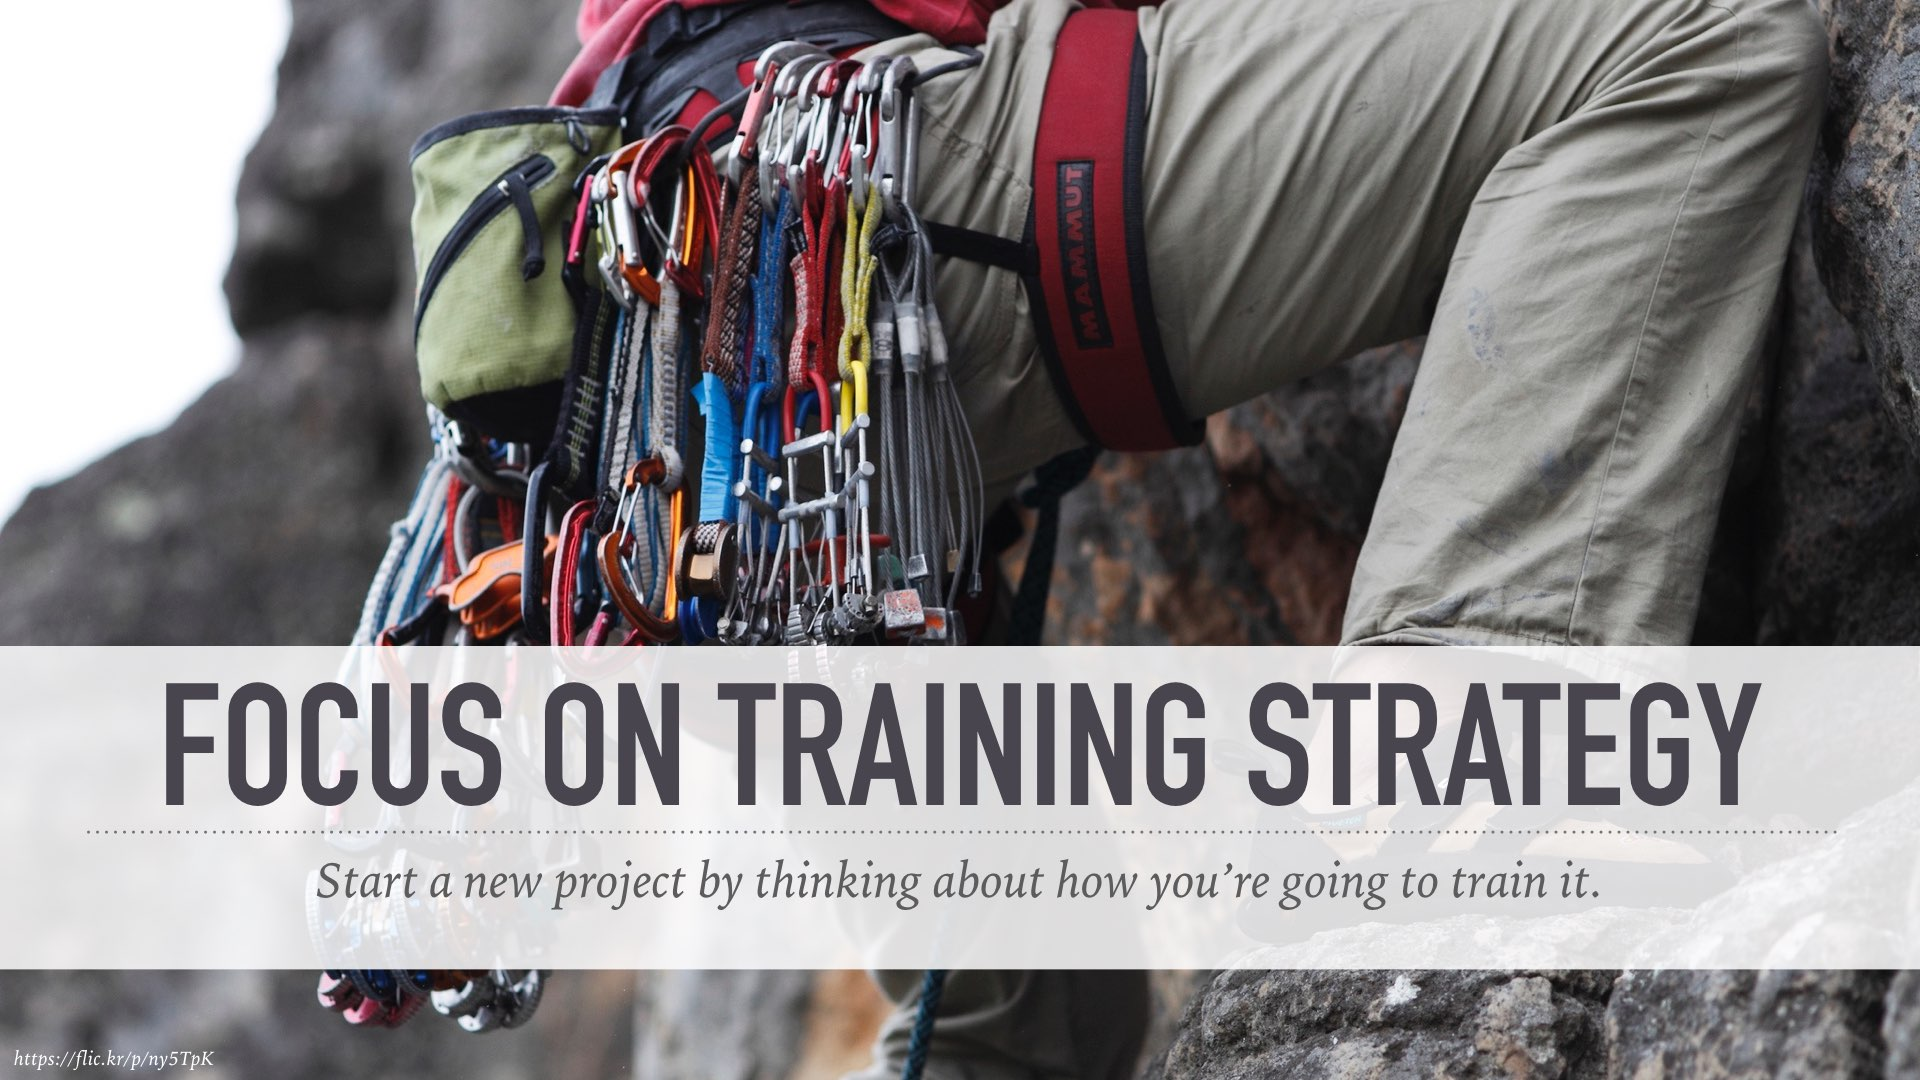 Focus on training strategy: start a new project by thinking about how you'll train it.